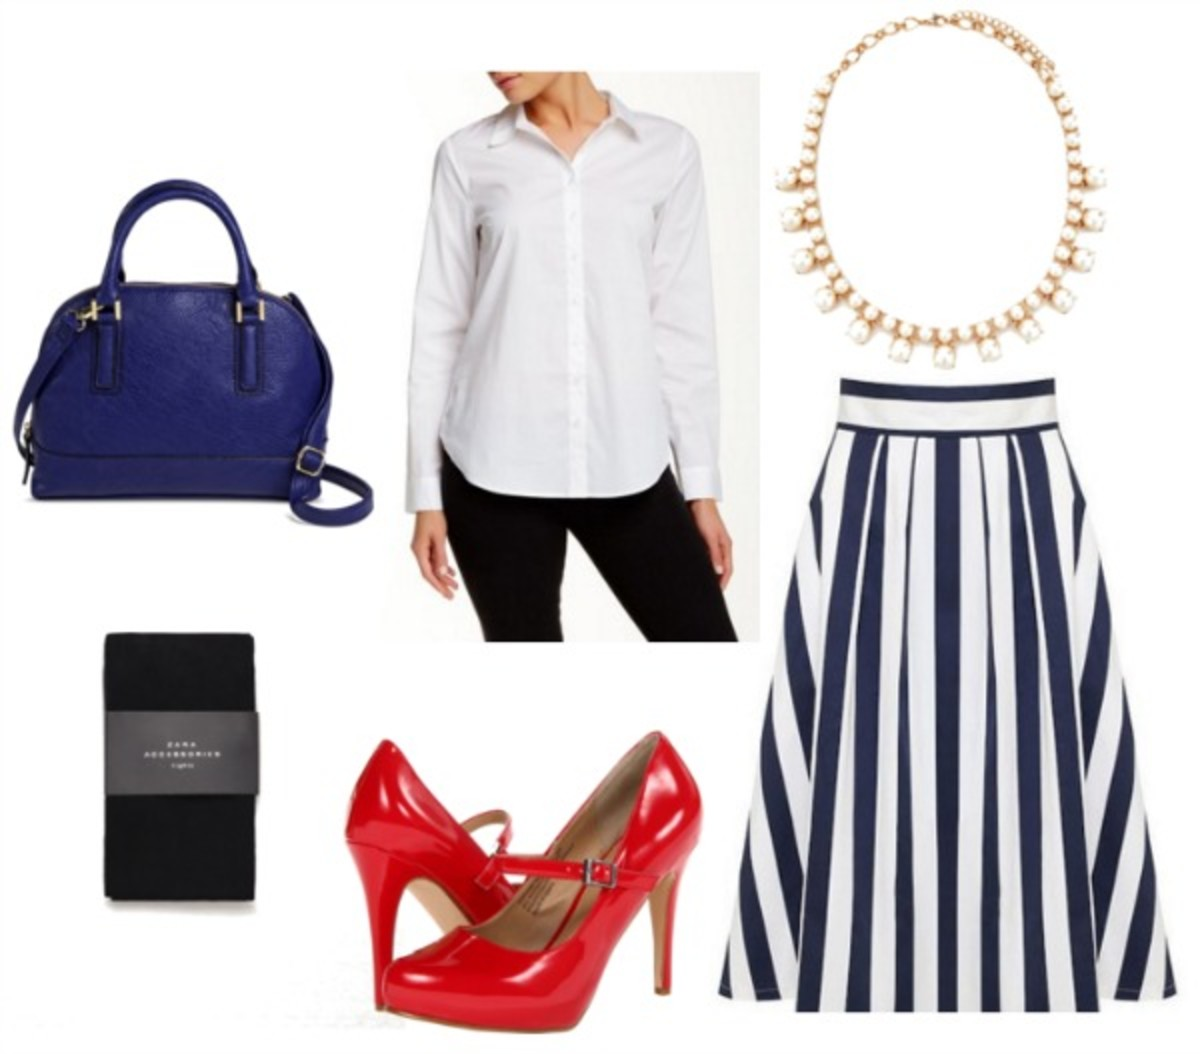 how-to-style-blue-navy-midi-skirt-vertical-stripe-necklace-red-shoe-pumps-white-collared-shirt-blue-bag-blue-tights-fall-winter-fashion-work.jpg